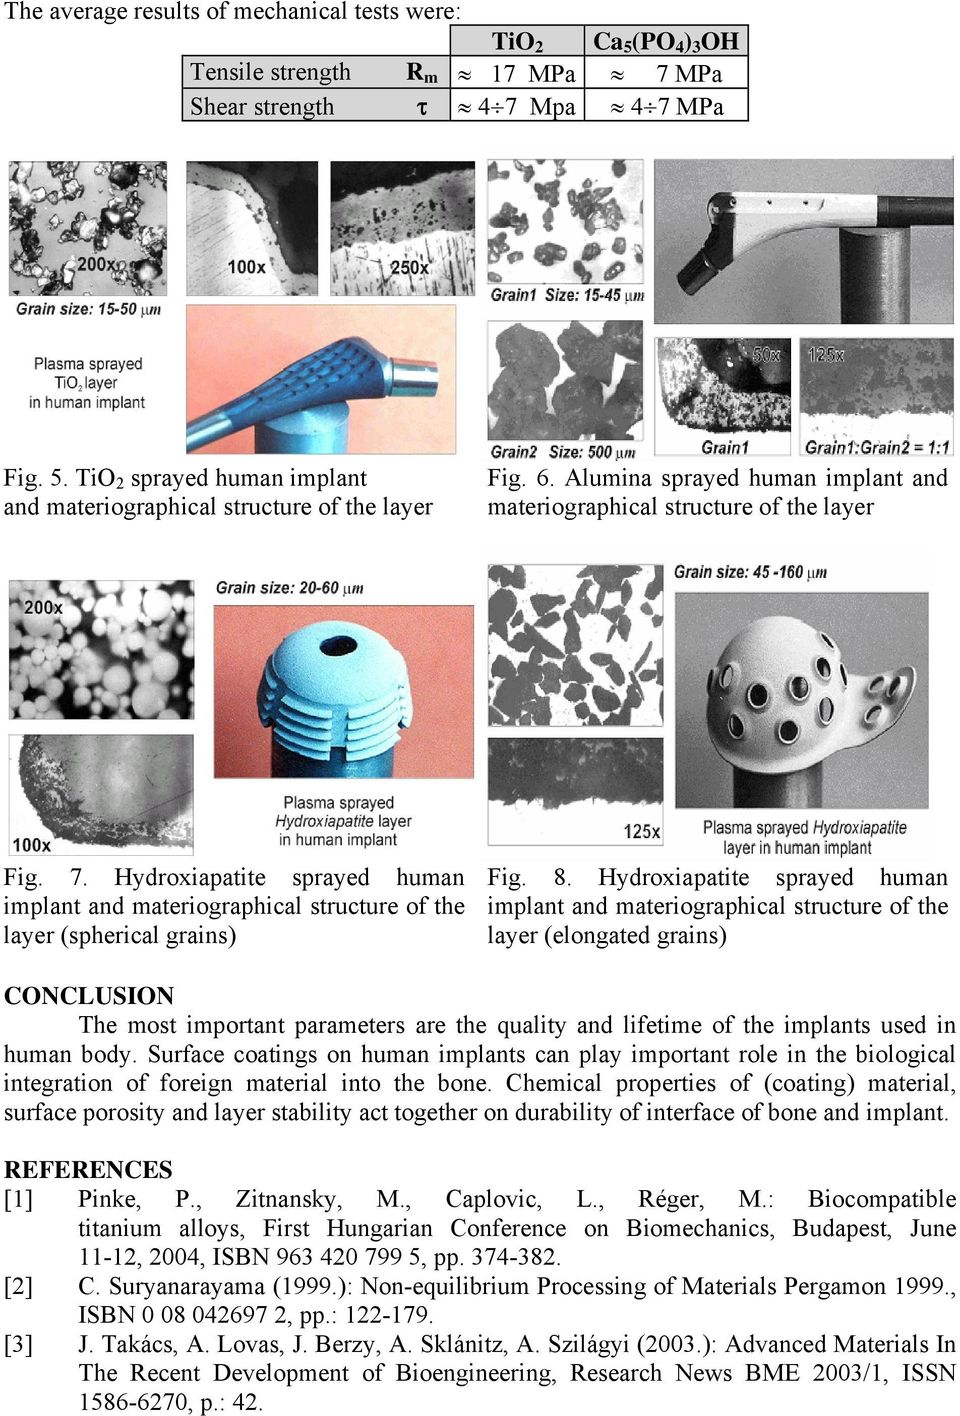 Hydroxiapatite sprayed human implant and materiographical structure of the layer (elongated grains) CONCLUSION The most important parameters are the quality and lifetime of the implants used in human